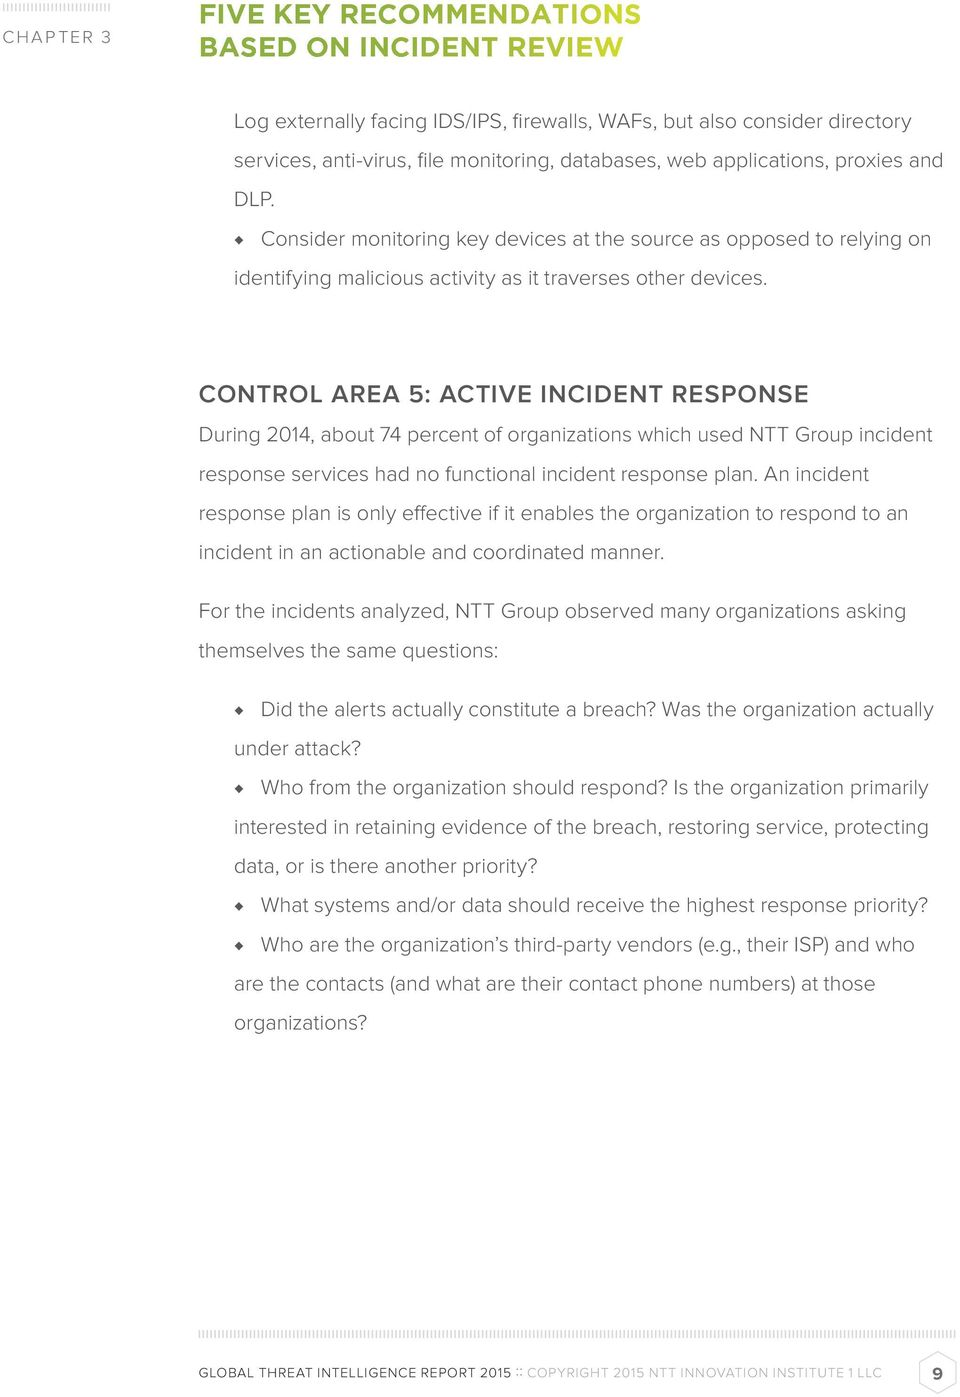 CONTROL AREA 5: ACTIVE INCIDENT RESPONSE During 2014, about 74 percent of organizations which used NTT Group incident response services had no functional incident response plan.